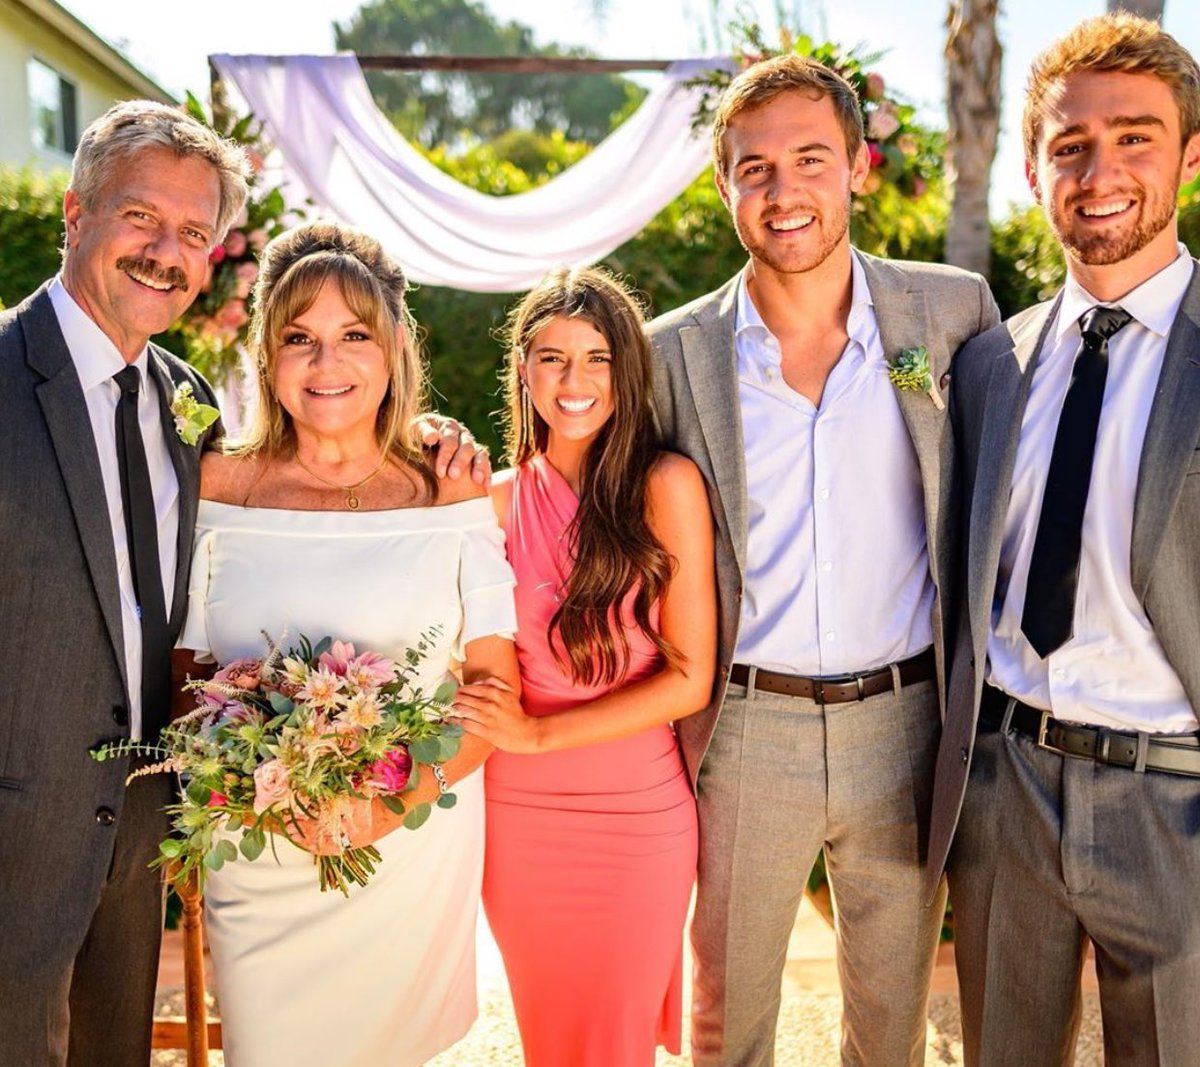 I hope Madi is in every one of Barb's vow renewal photos. #TheBachelor https://t.co/qiOpiagXHK